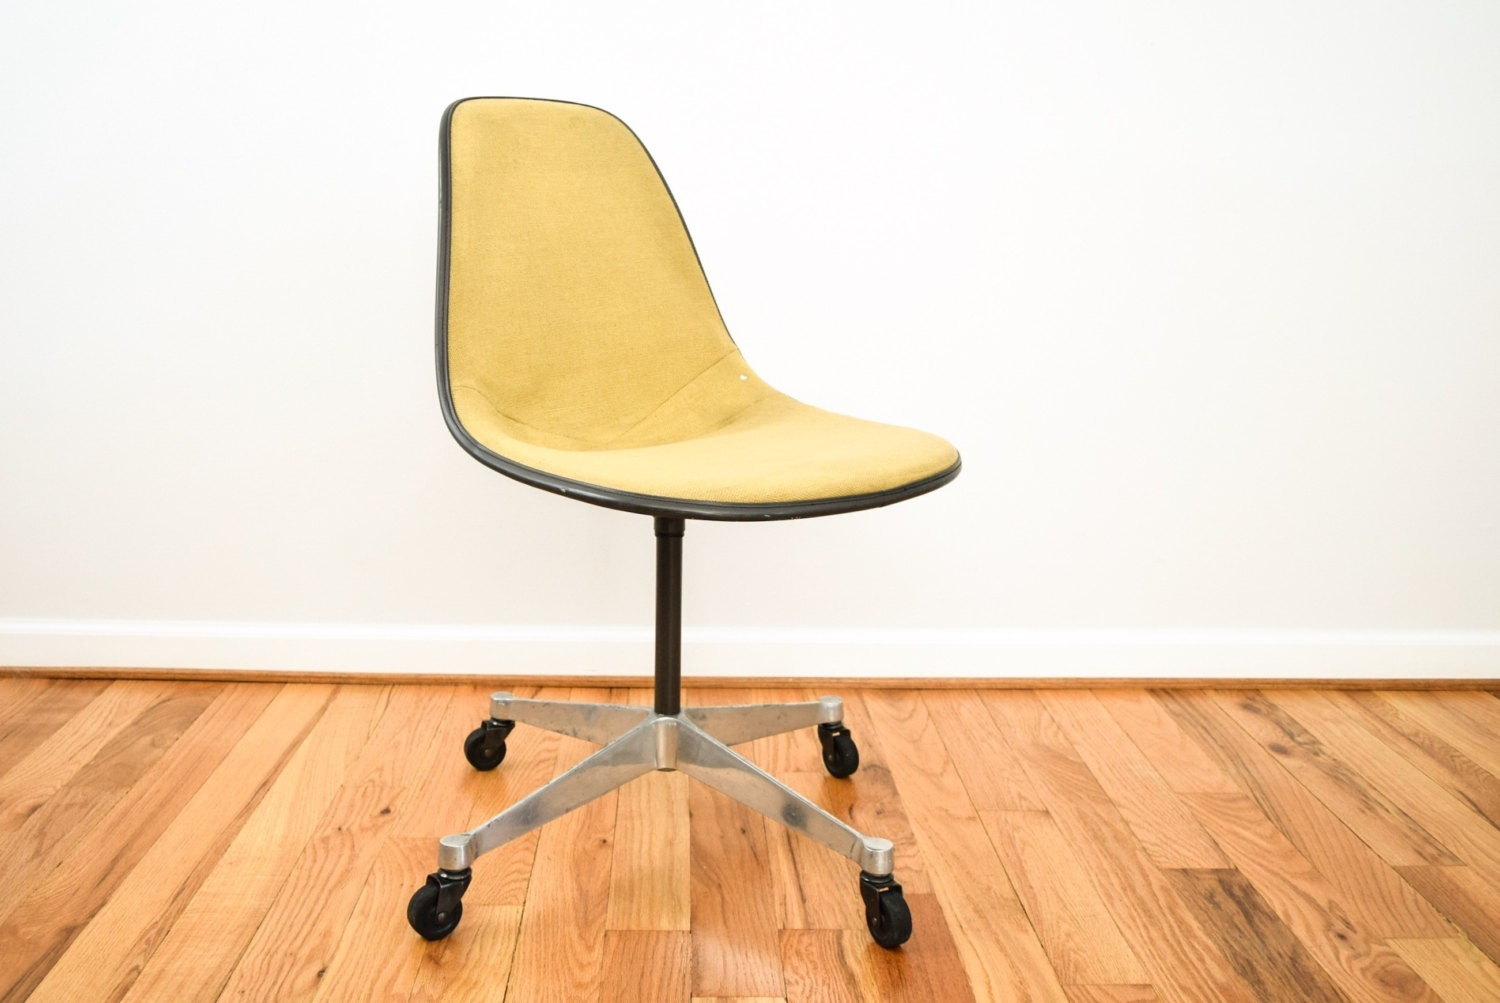 eames chair shell chair fiberglass chair authentic mid. Black Bedroom Furniture Sets. Home Design Ideas